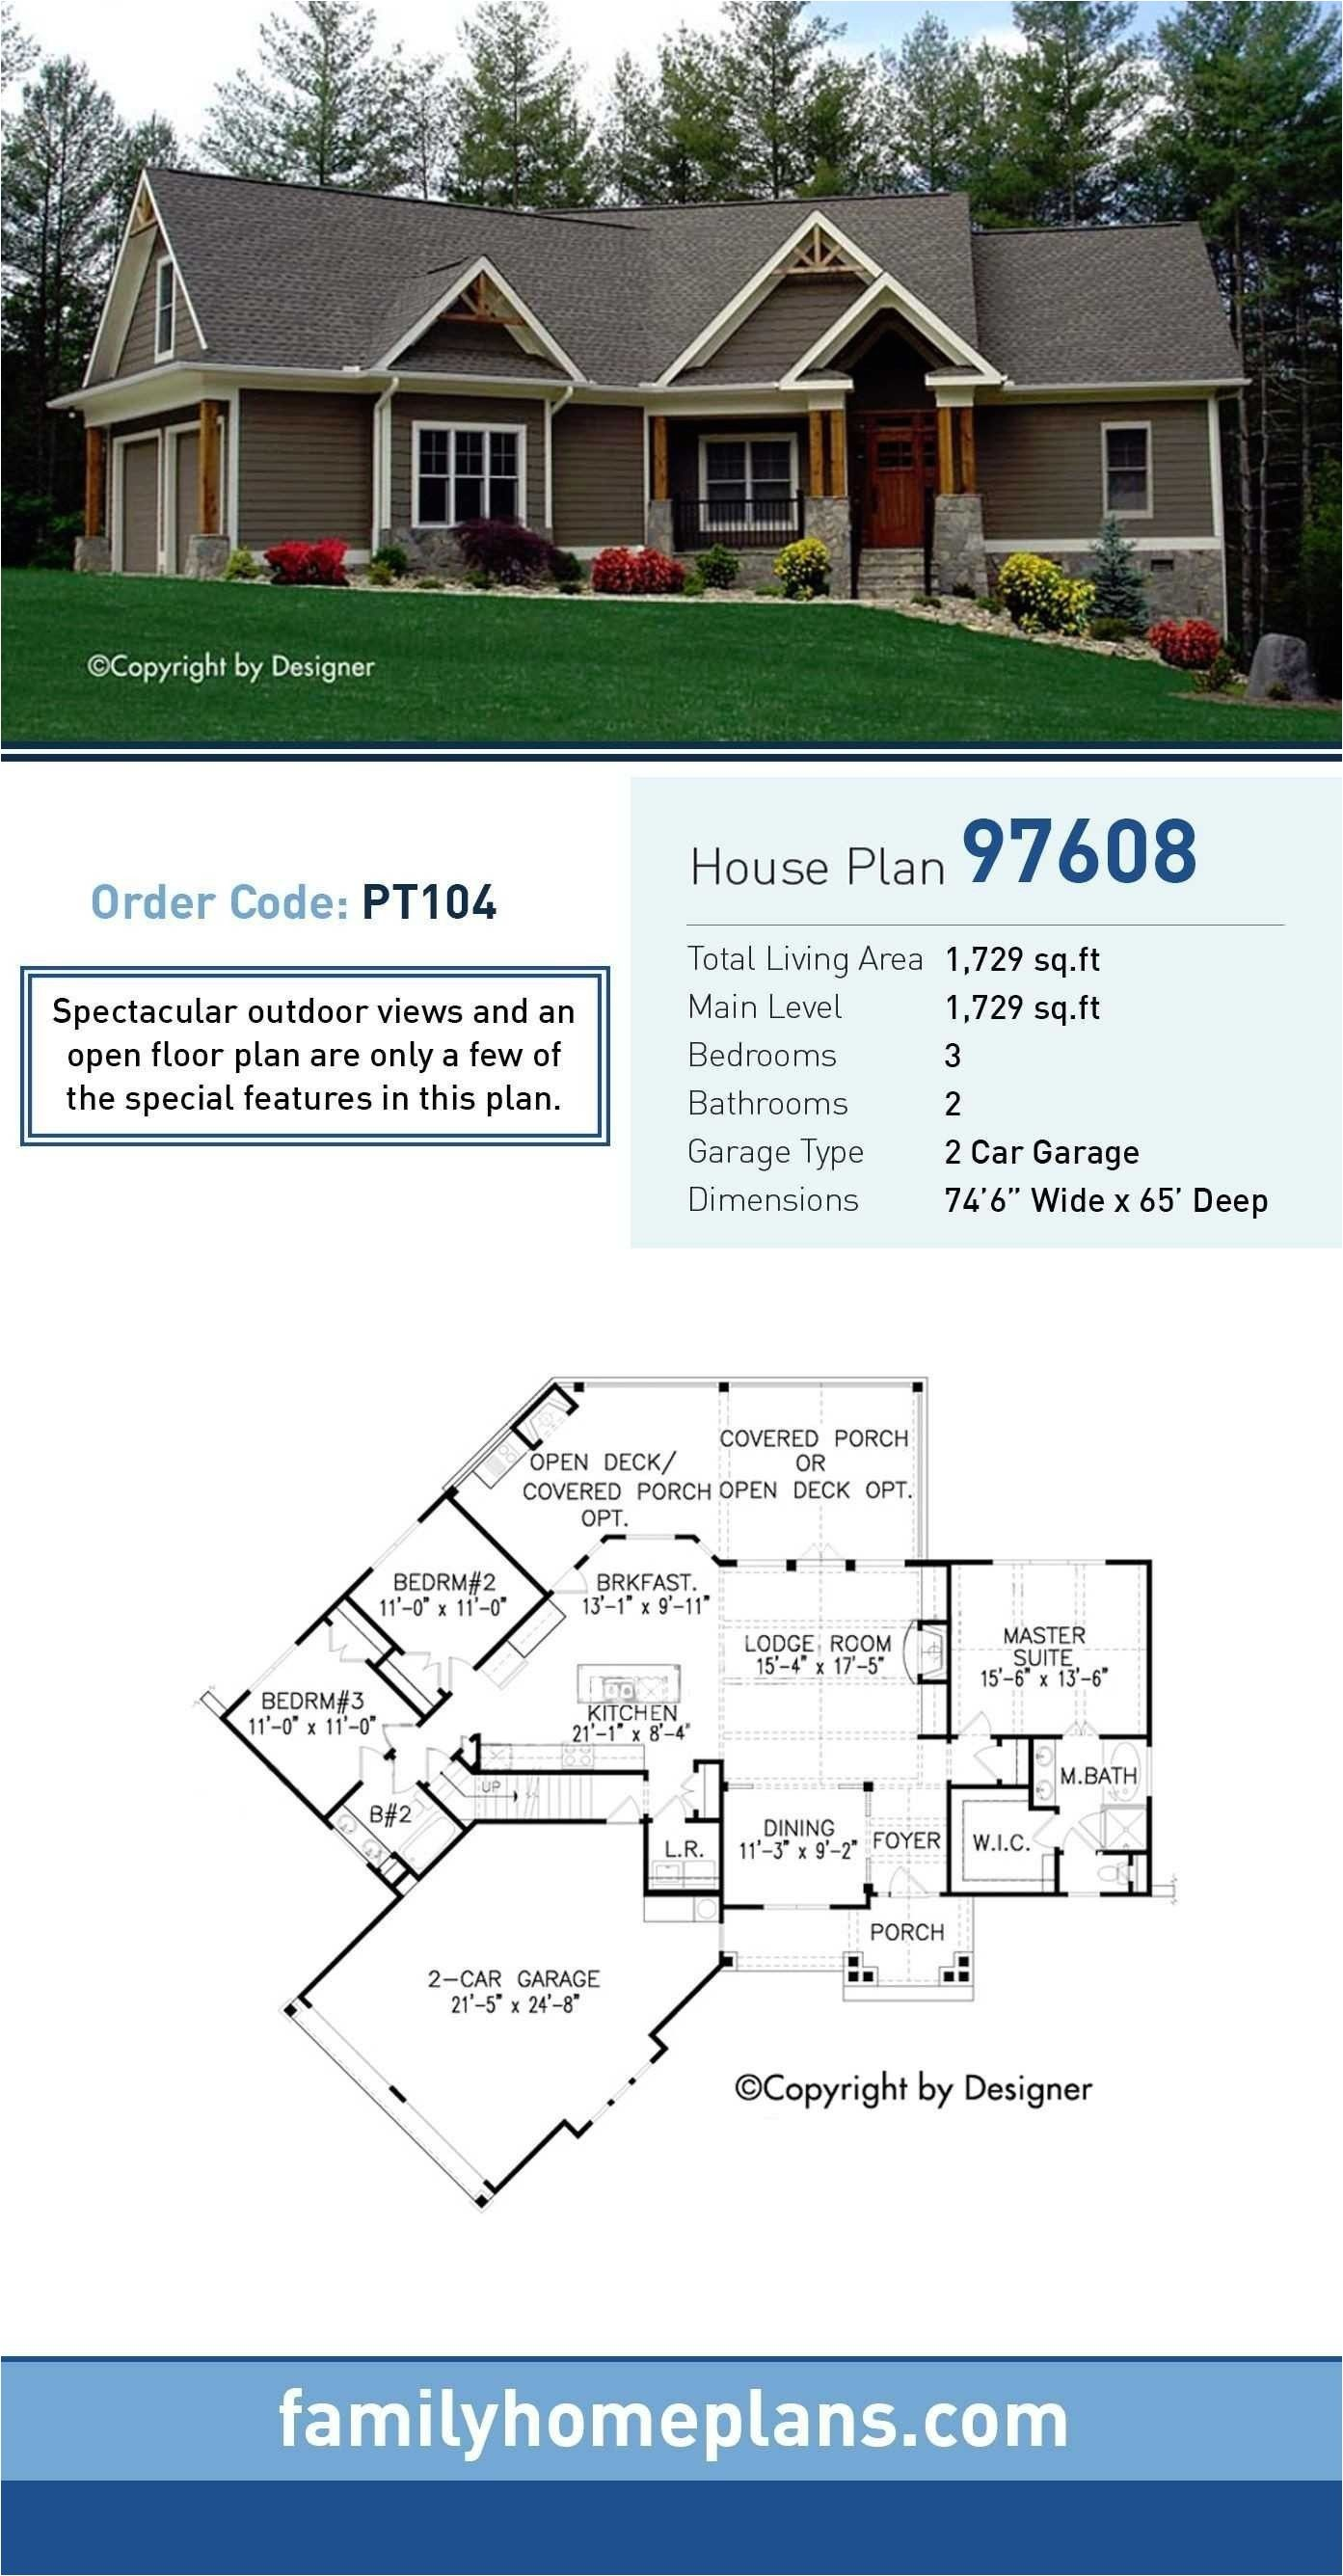 House Plans With A View Of The Water Craftsman House Plans House Blueprints Southern House Plans